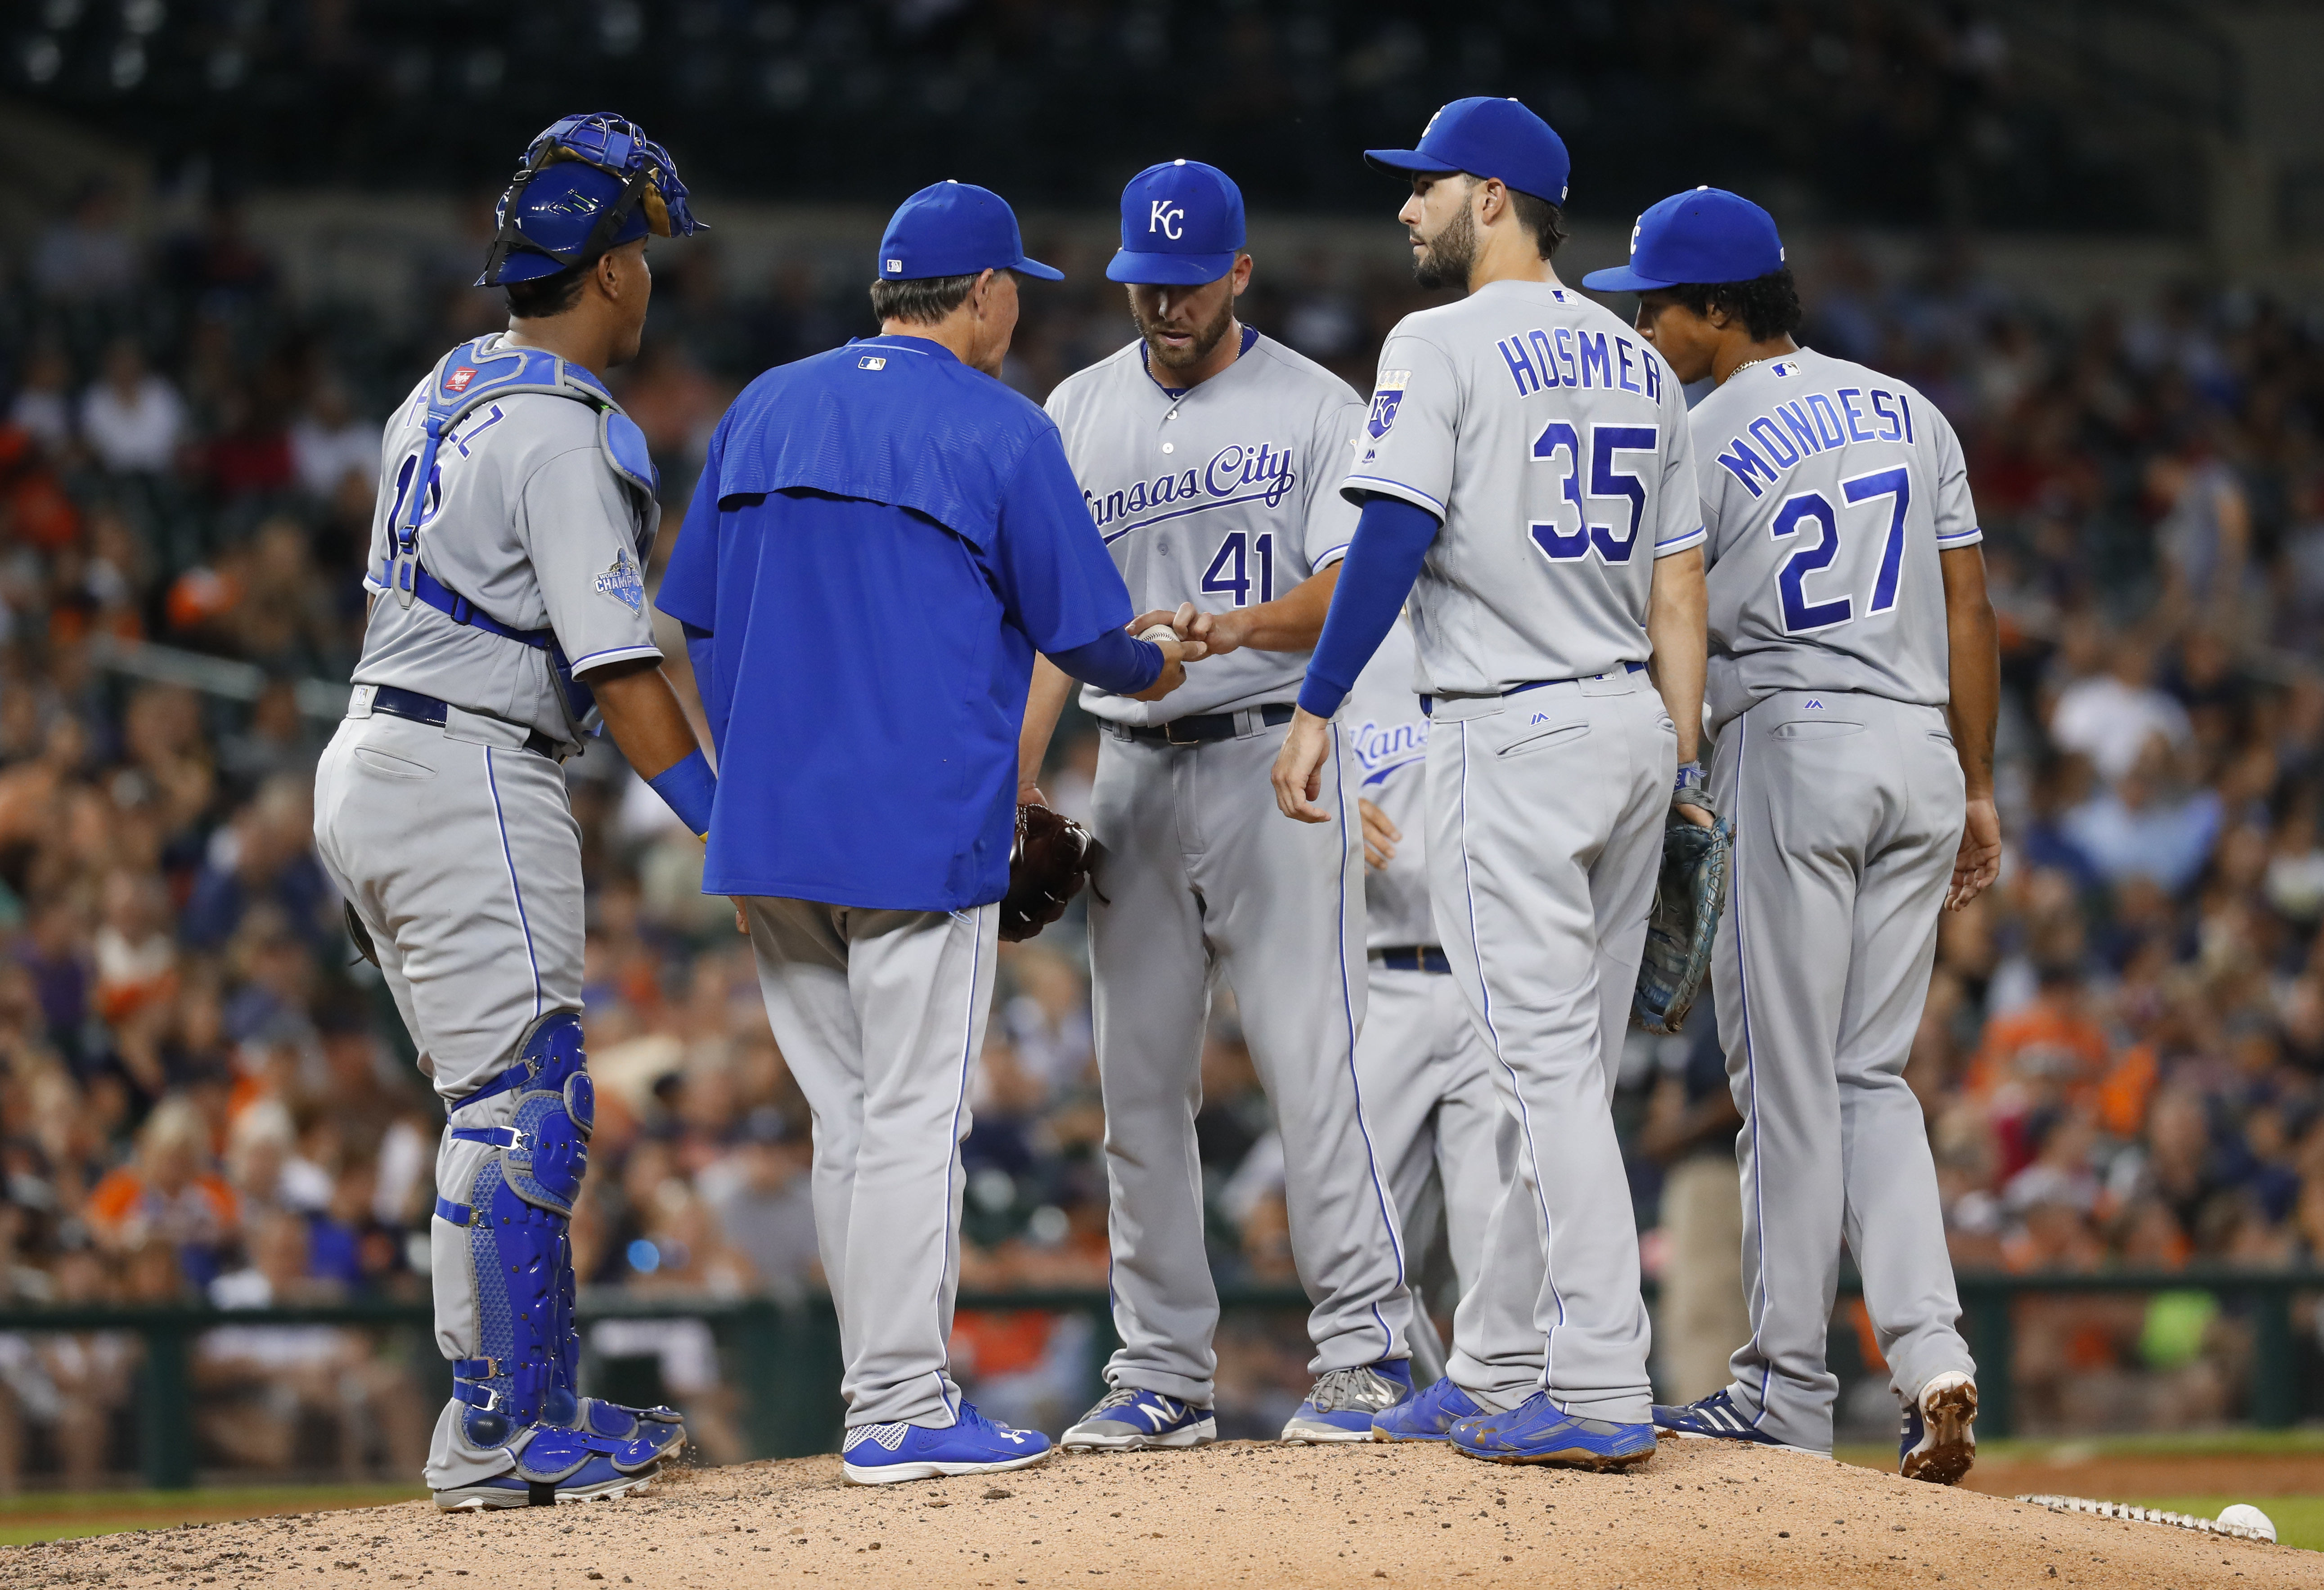 Kansas City Royals manager Ned Yost takes the ball from pitcher Danny Duffy in the eighth inning of a baseball game against the Detroit Tigers in Detroit, Tuesday, Aug. 16, 2016. (AP Photo/Paul Sancya)